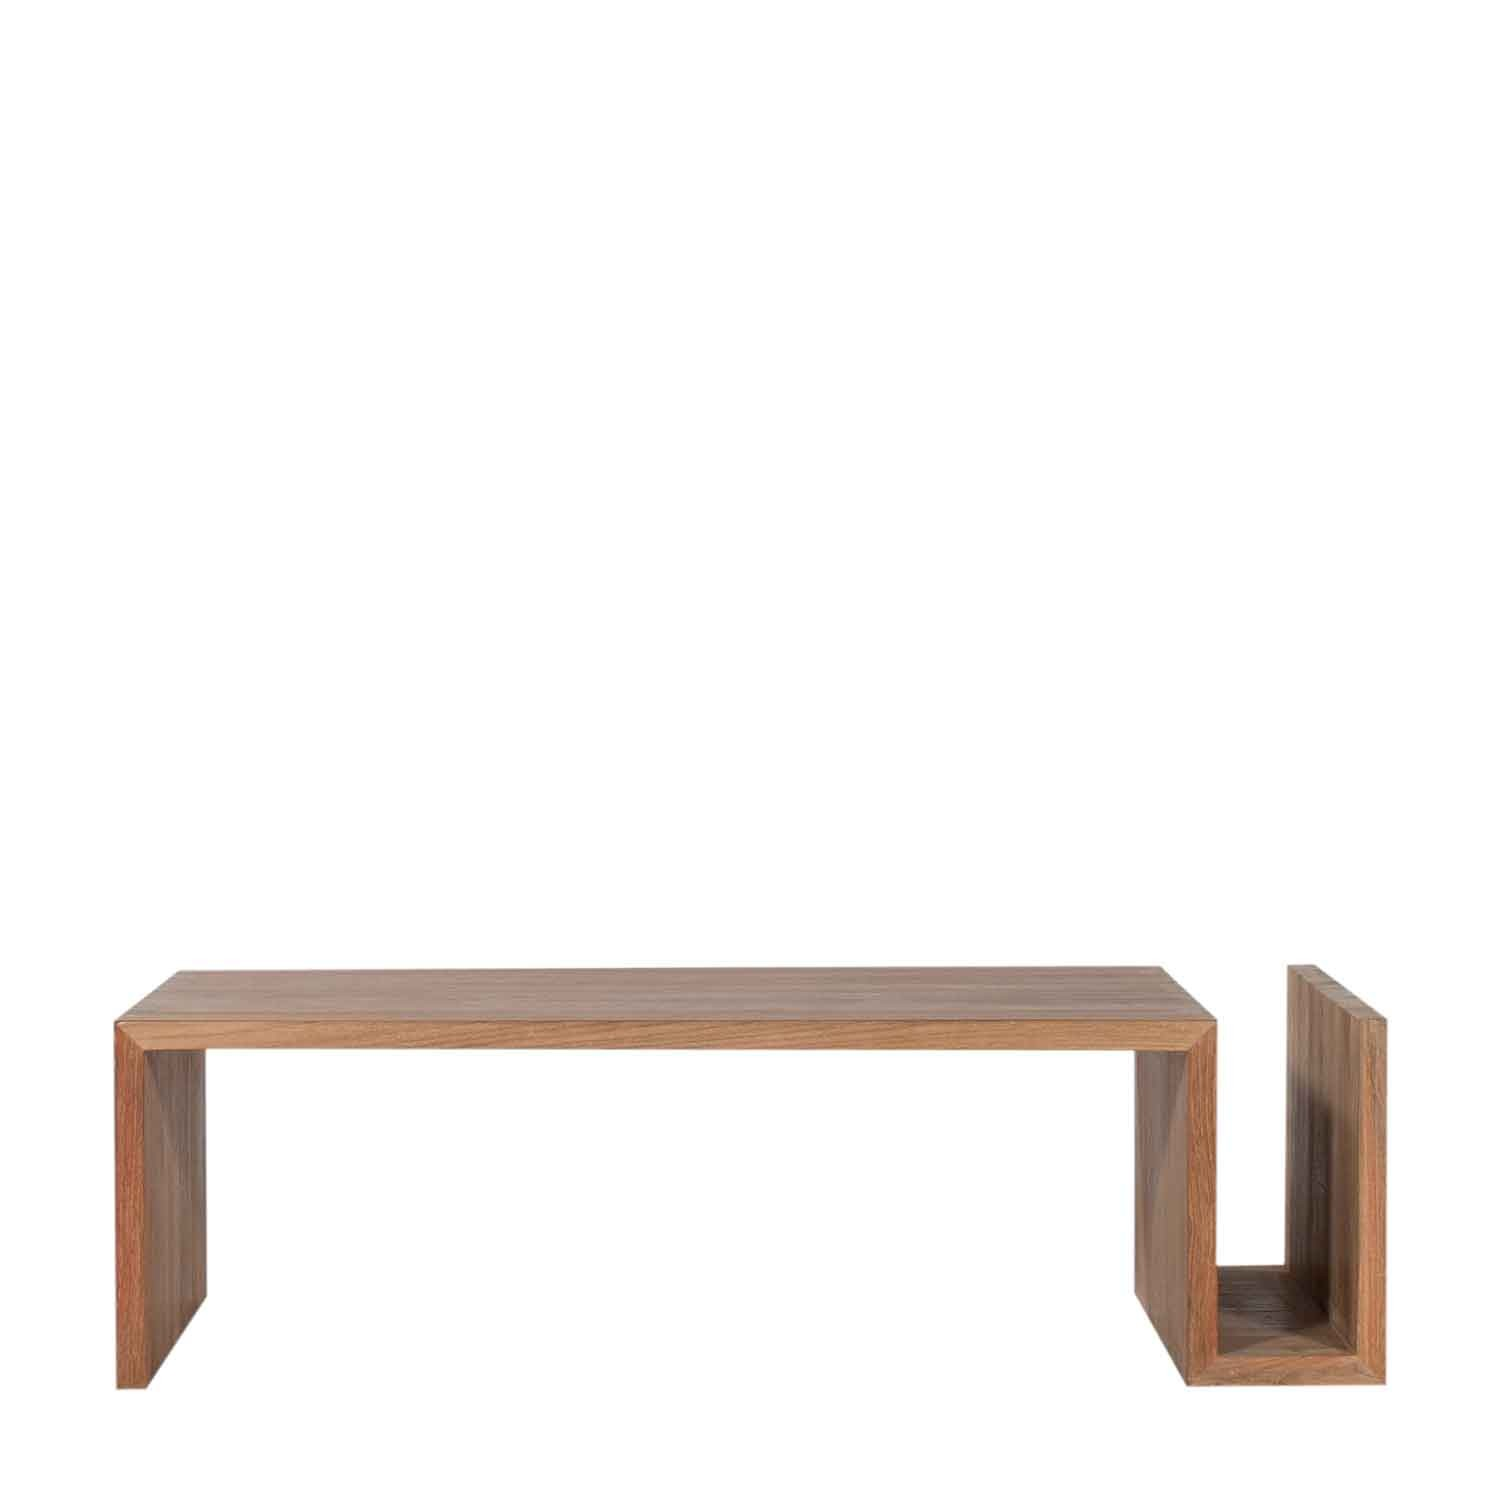 Ethnicraft Teak Naomi coffee table